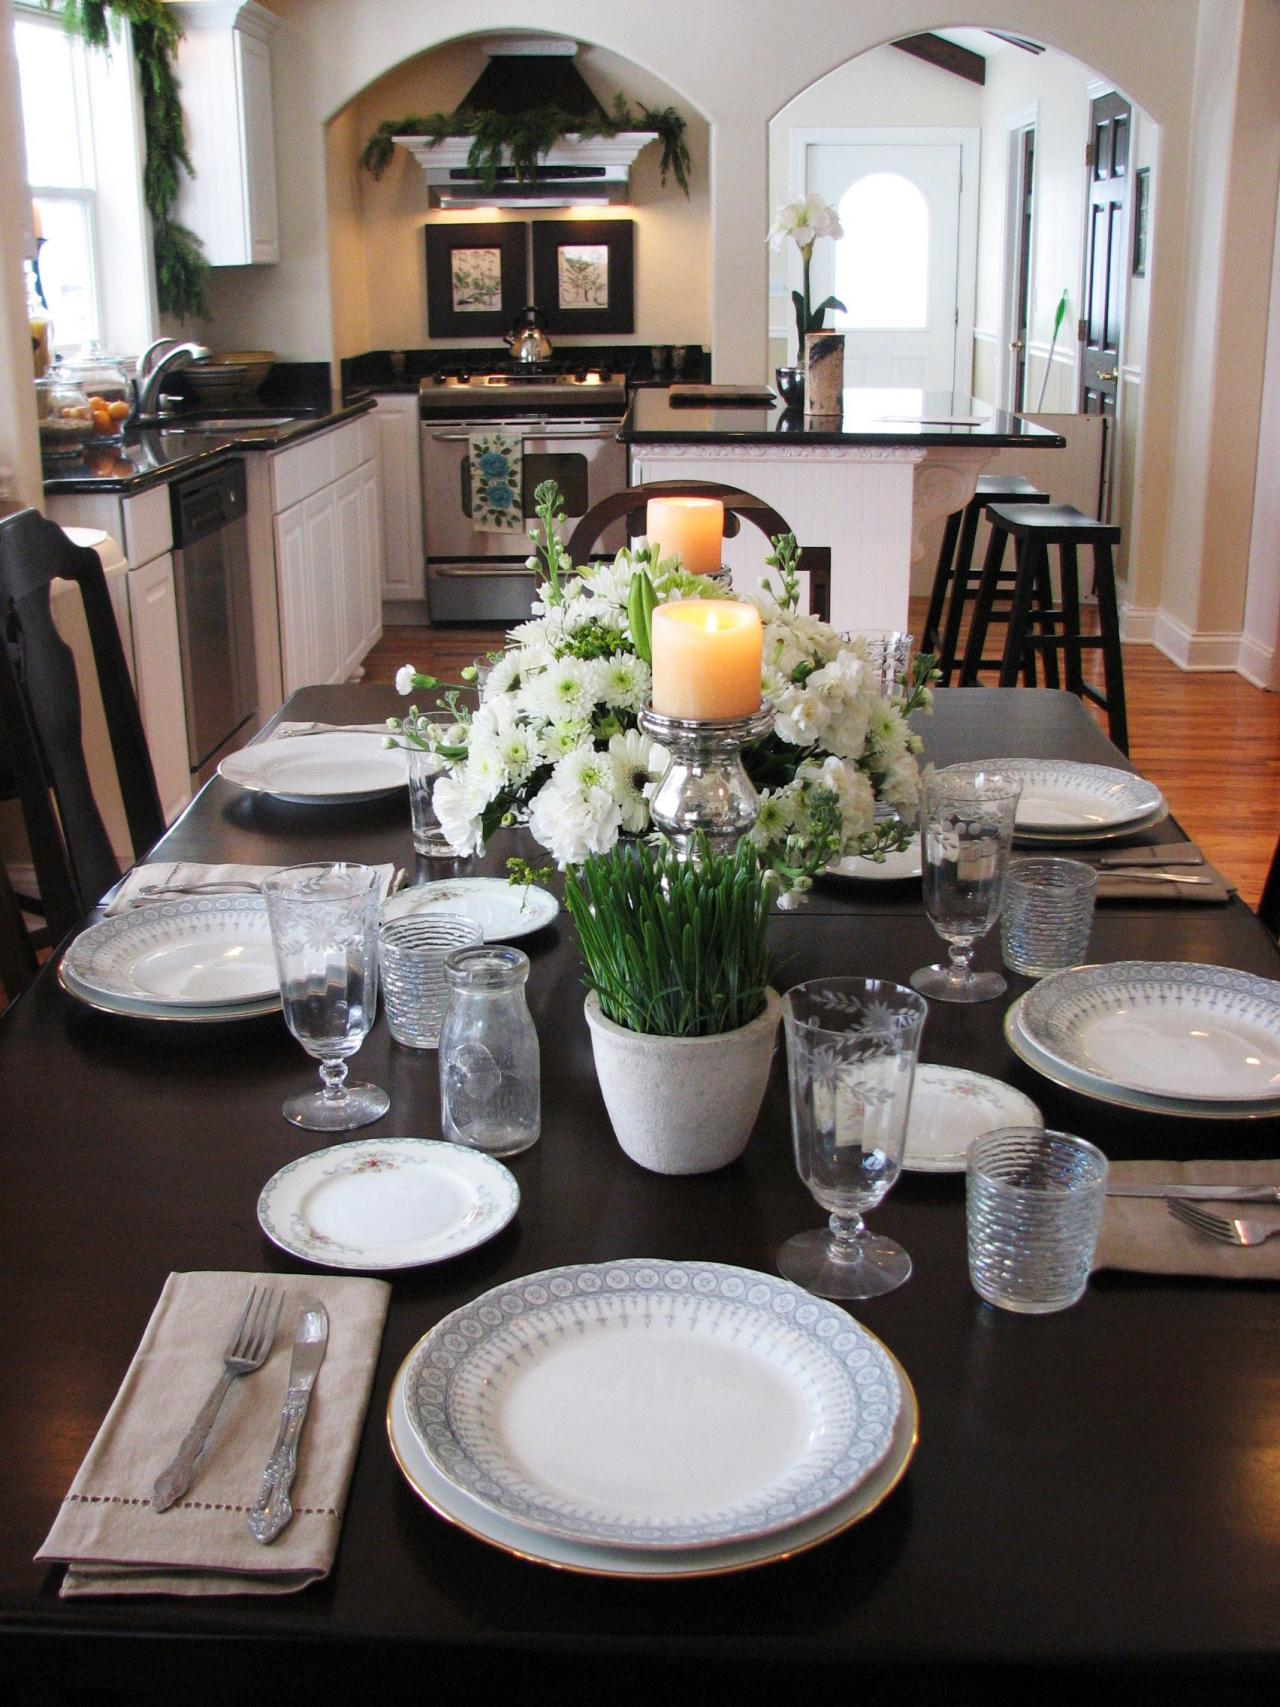 Kitchen table centerpiece design ideas hgtv pictures